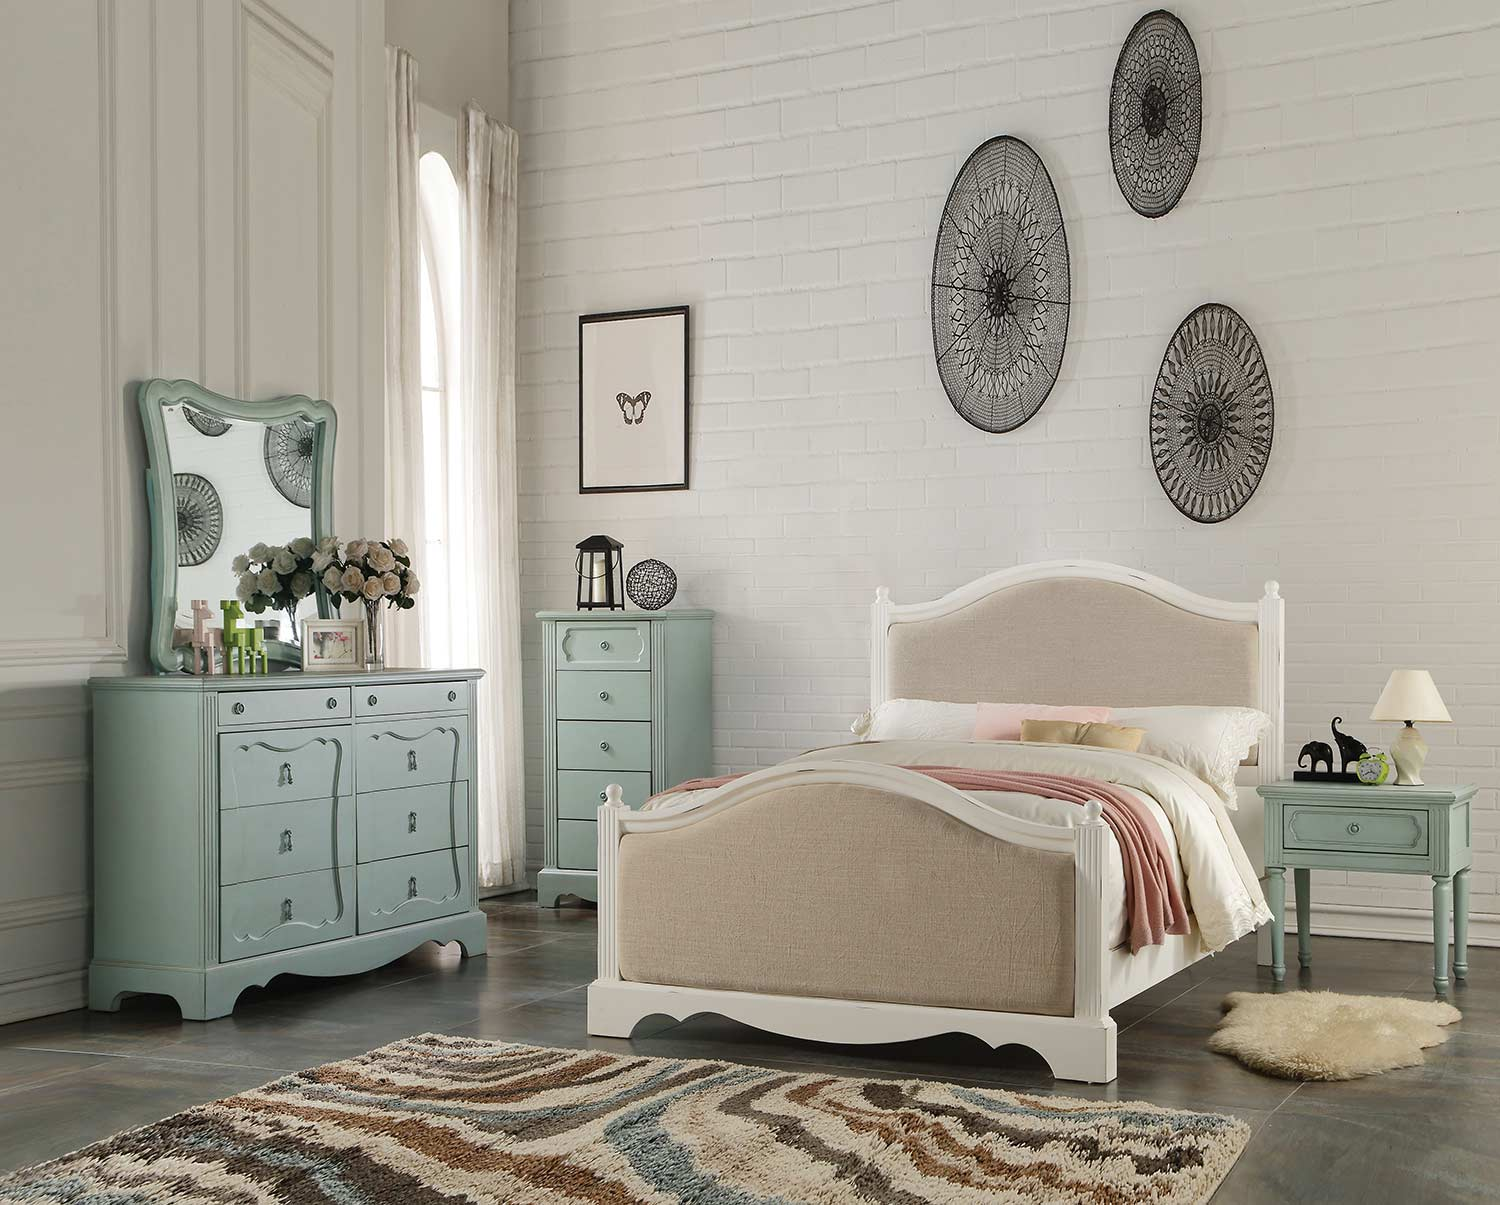 Acme Morre Bedroom Set - Beige Linen/Antique White